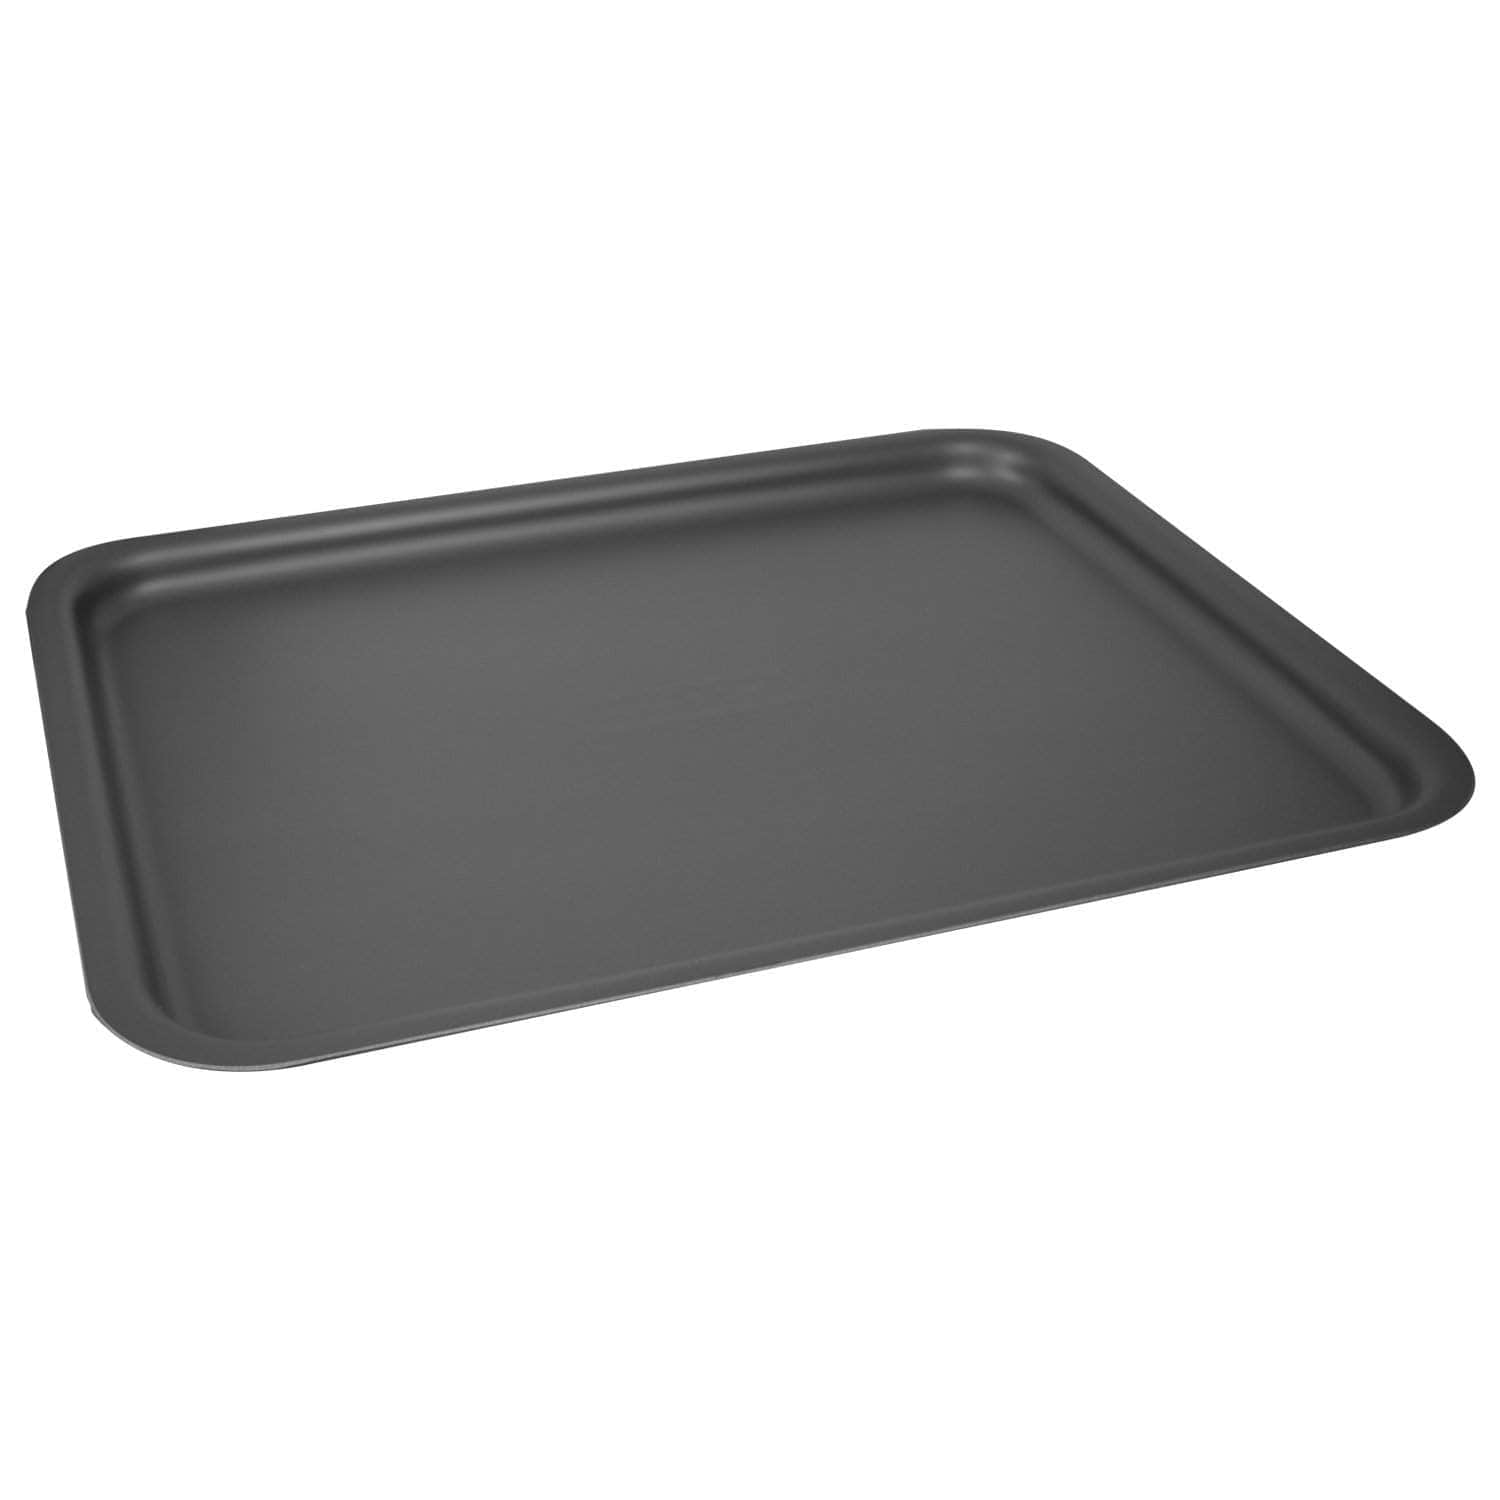 'Fits on runners' baking tray for use with Aga range cookers 'full oven' size